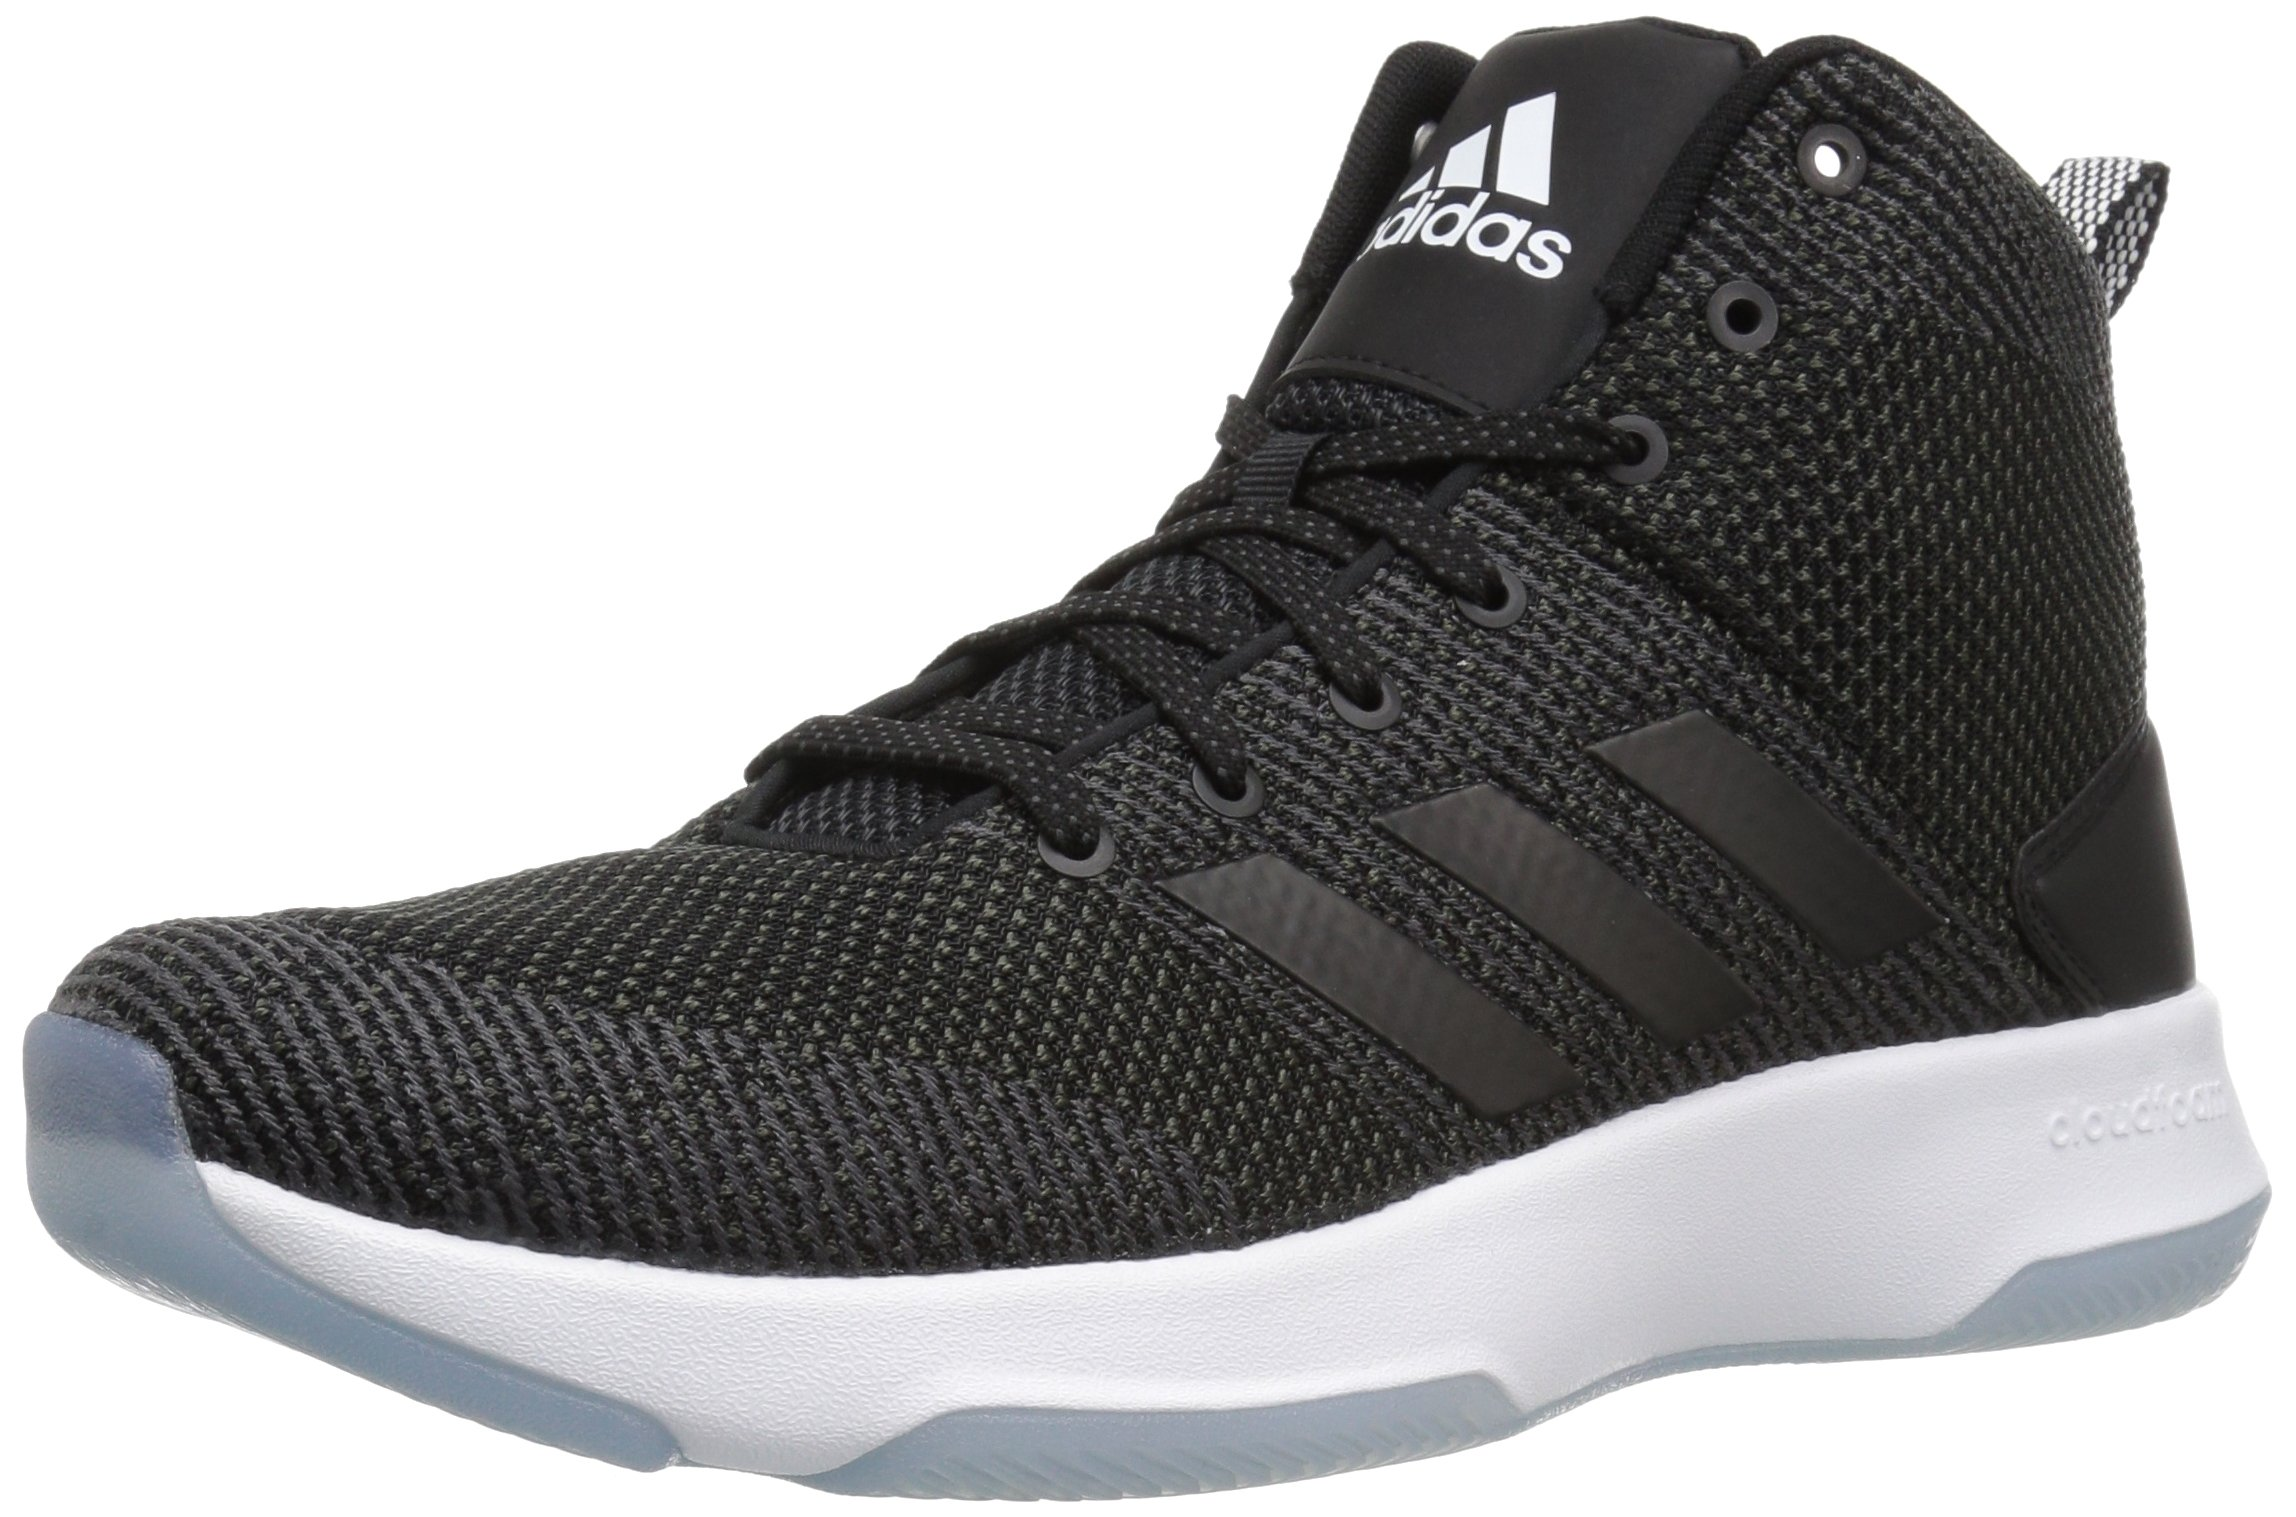 adidas Neo Men's CF Executor Mid Basketball-Shoes, Utility Black/Black/White, 10 Medium US